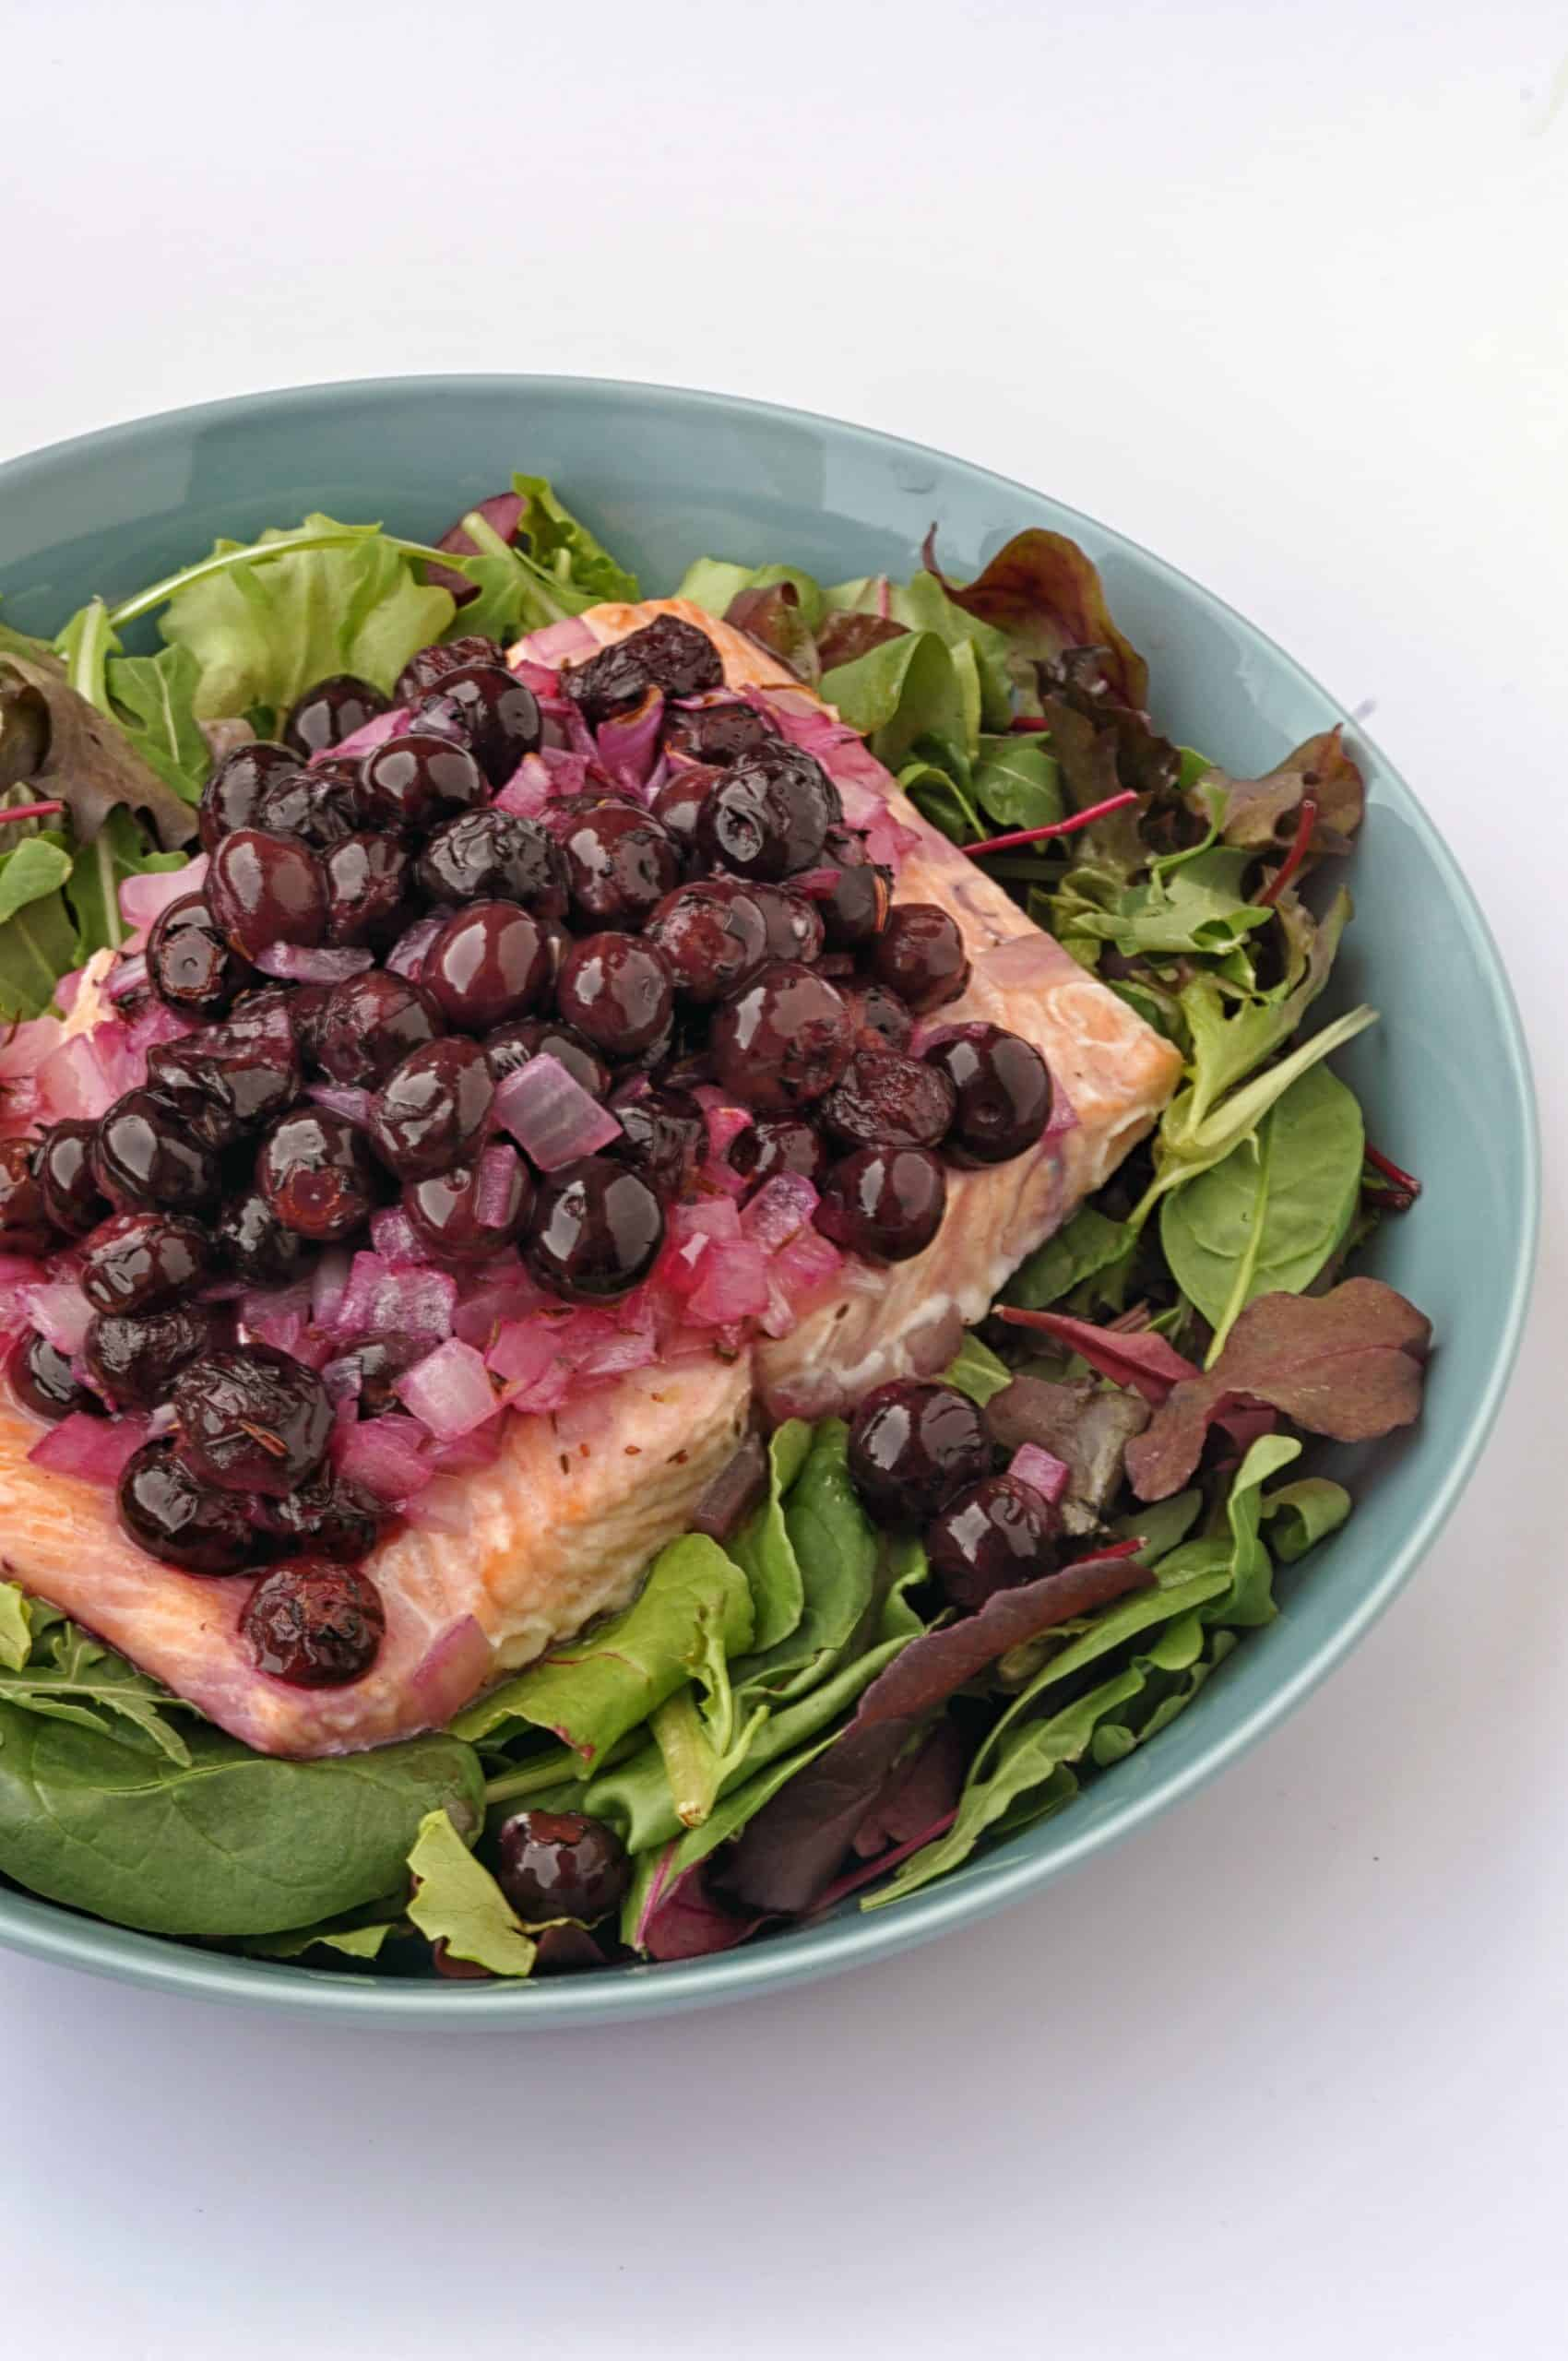 salmon with blueberries on a plate with greens